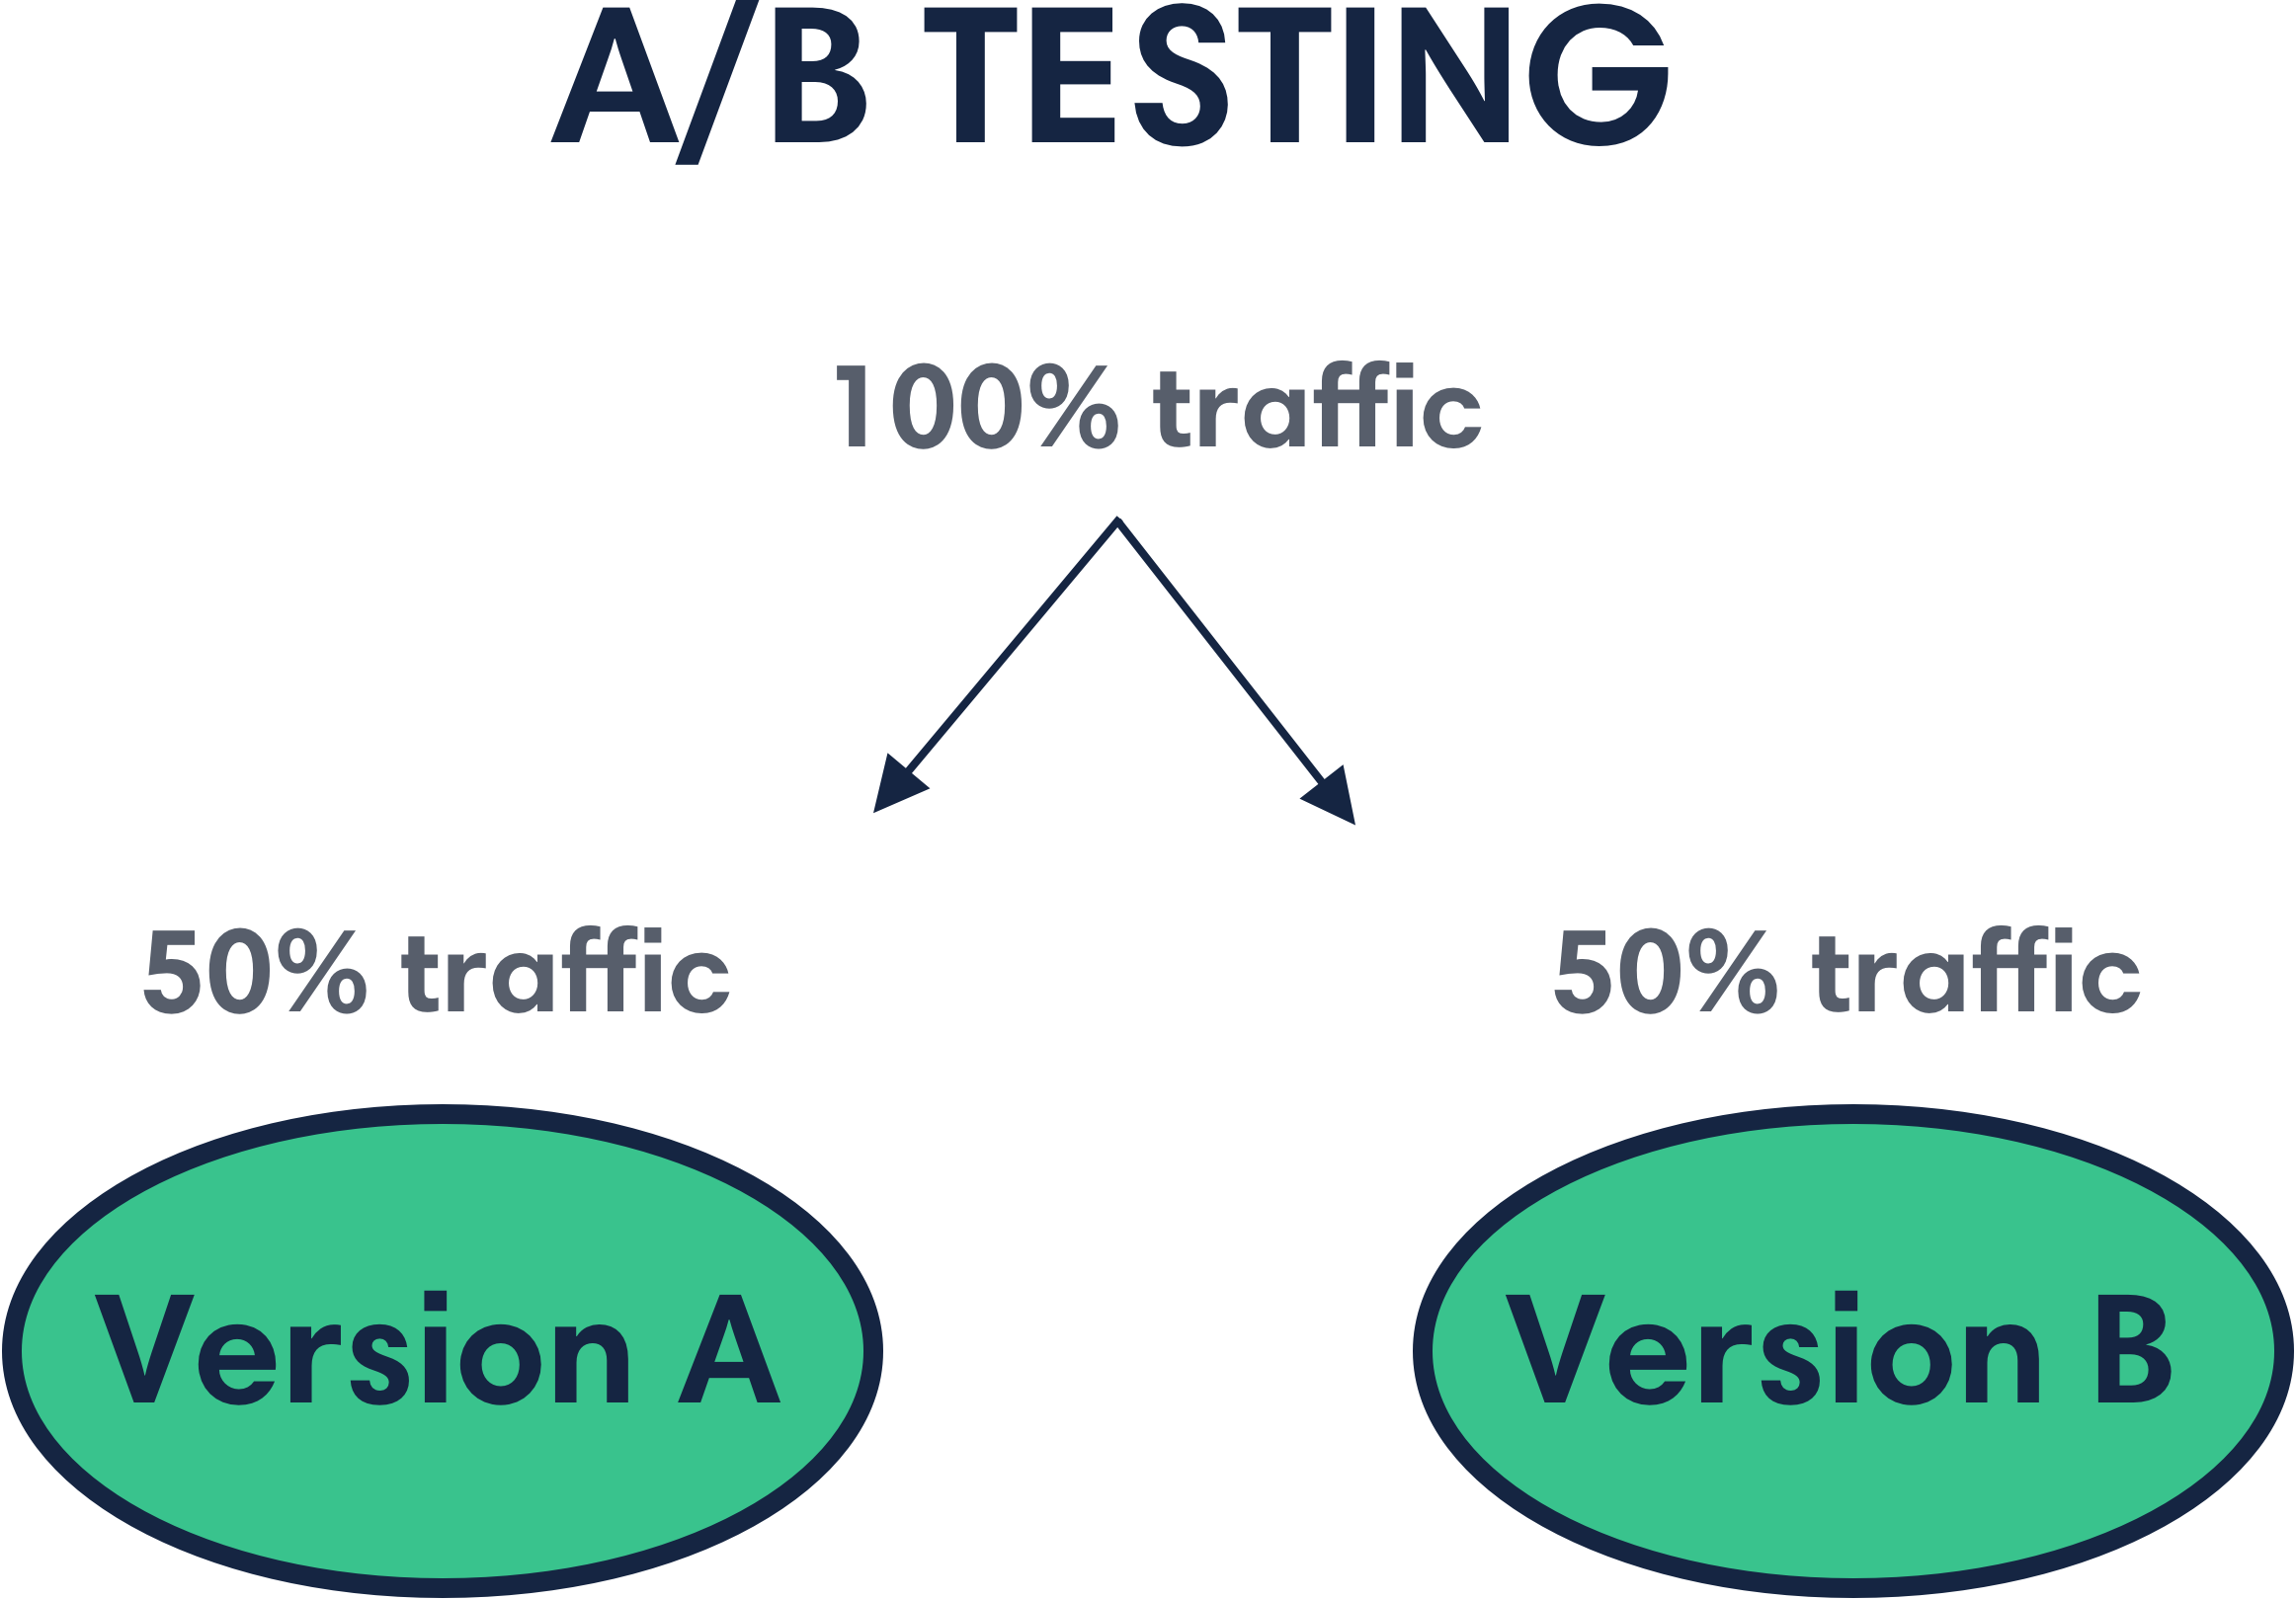 A/B testing for insurance agencies